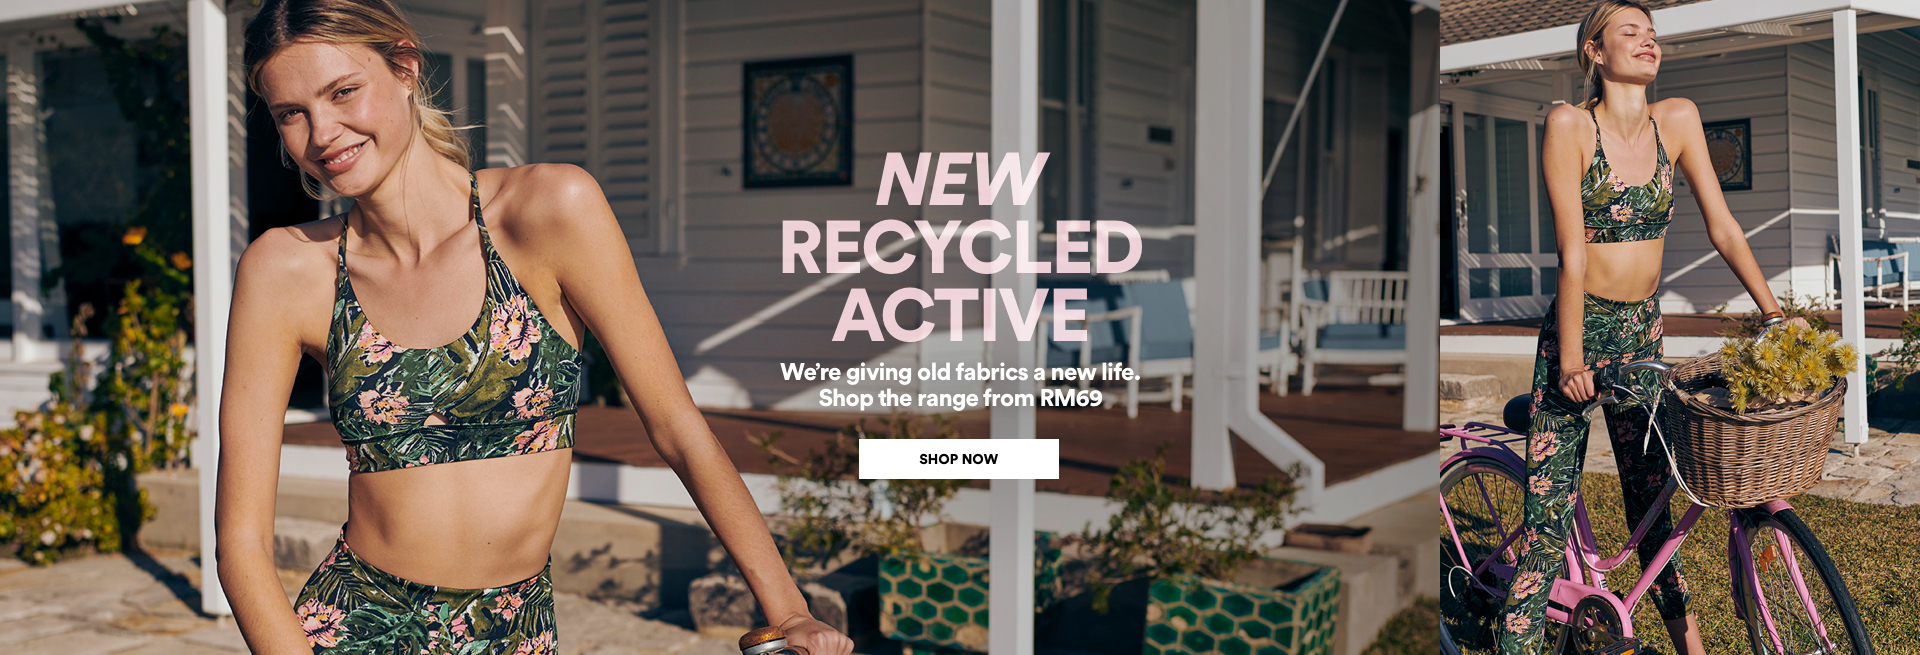 Recycled Activewear. From RM69. Click to Shop.